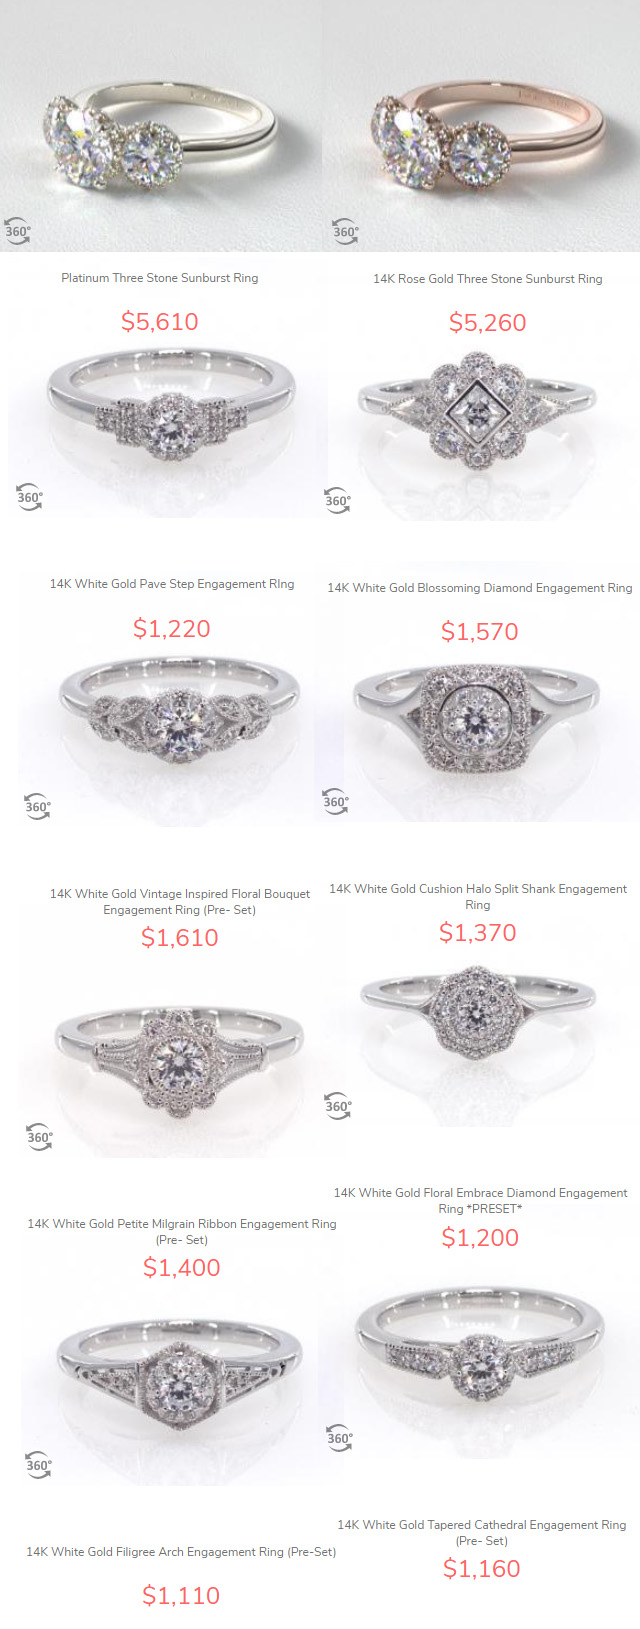 Fast Engagement Rings At James Allen